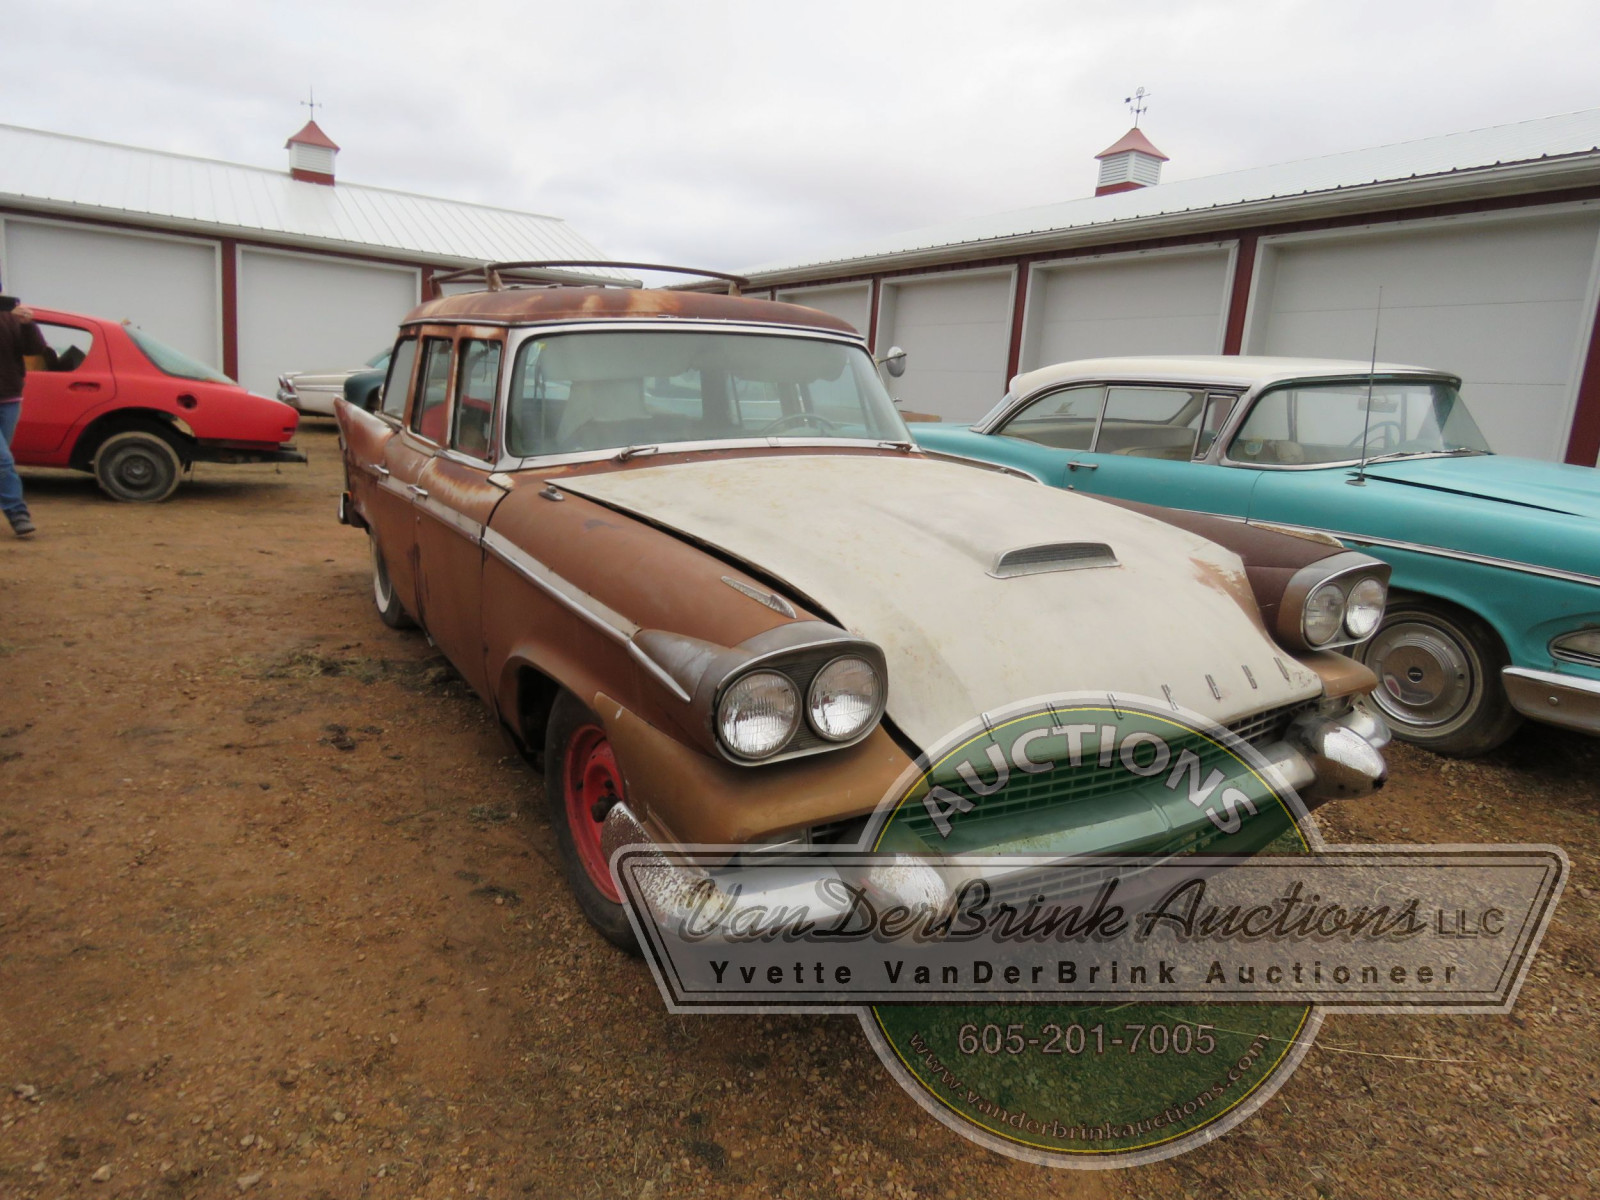 1958 Packard 4dr Wagon - Image 1